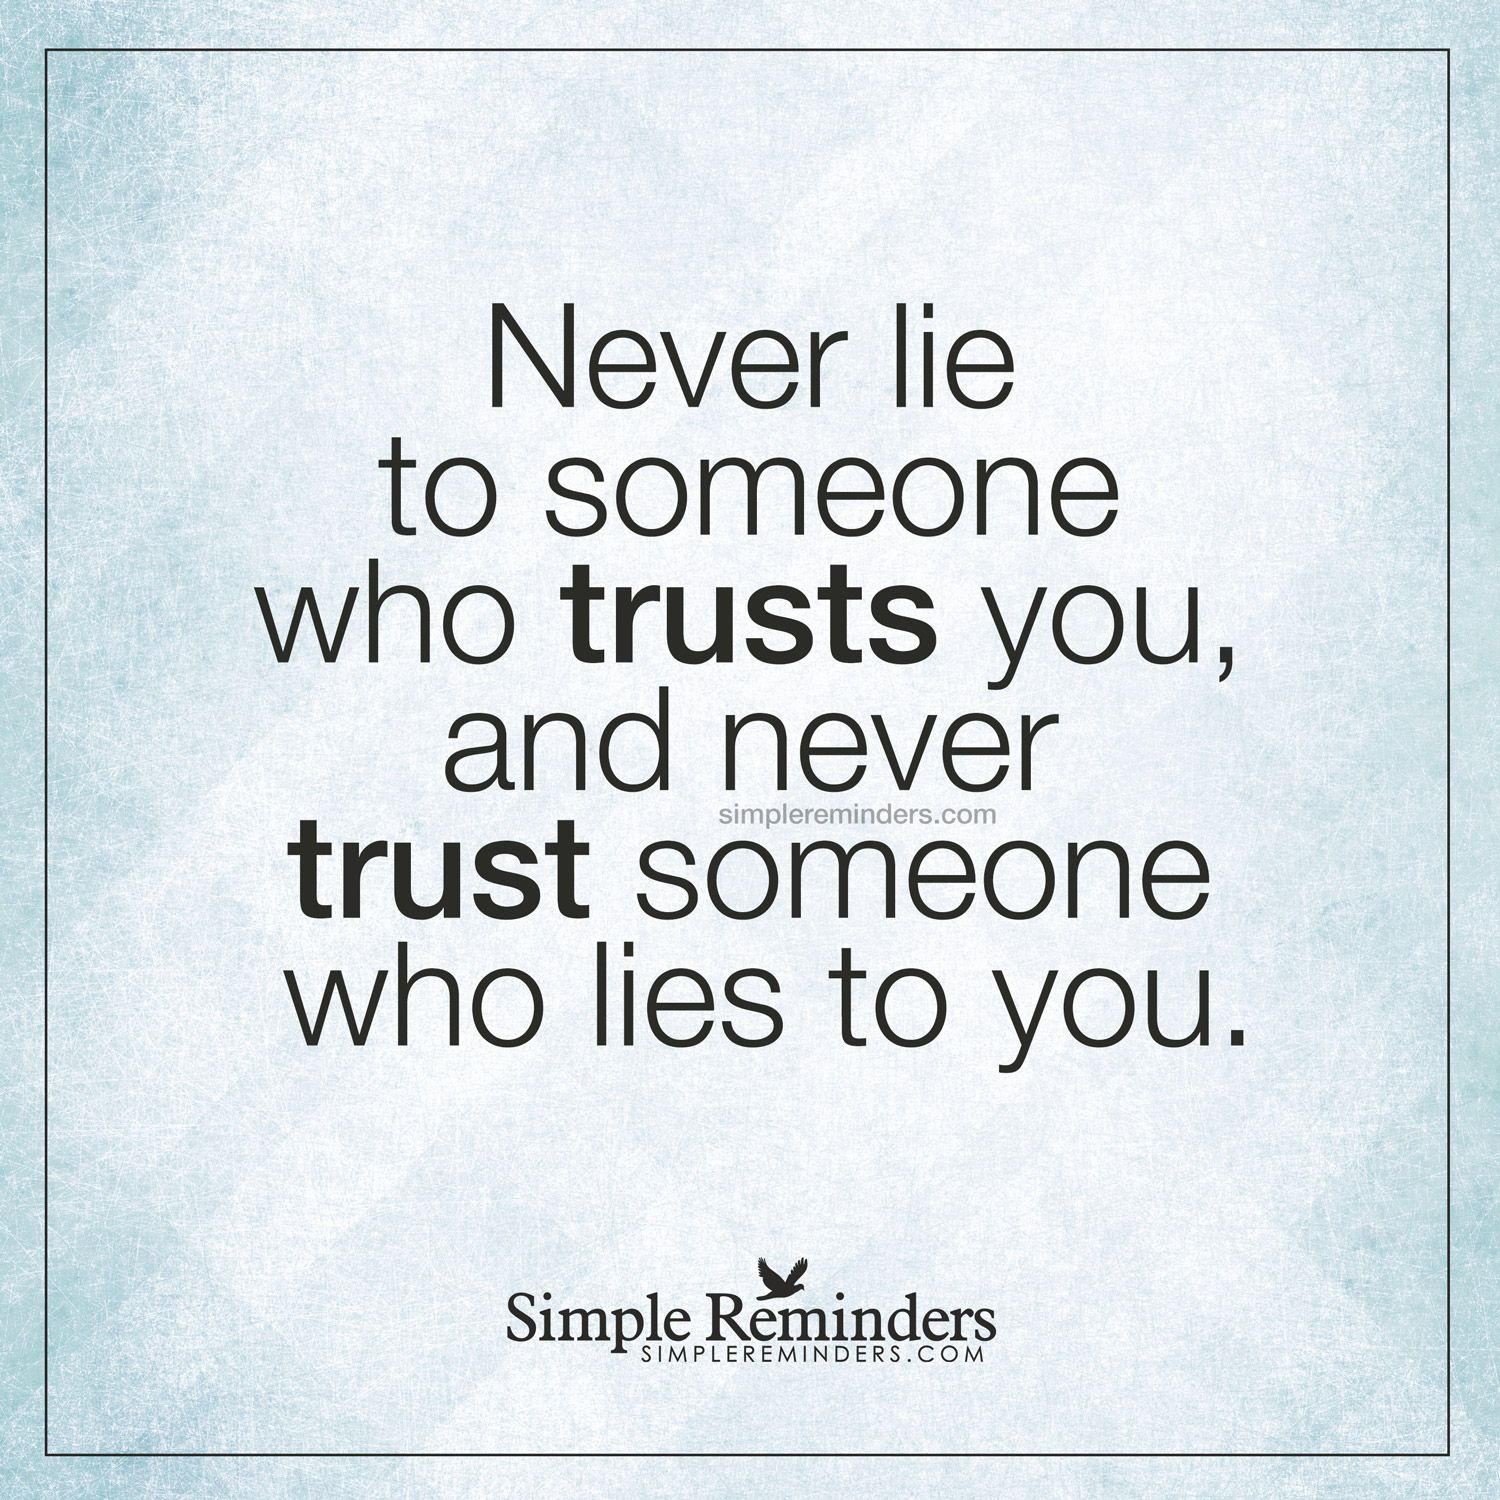 Quotes About Lies And Trust In A Relationship